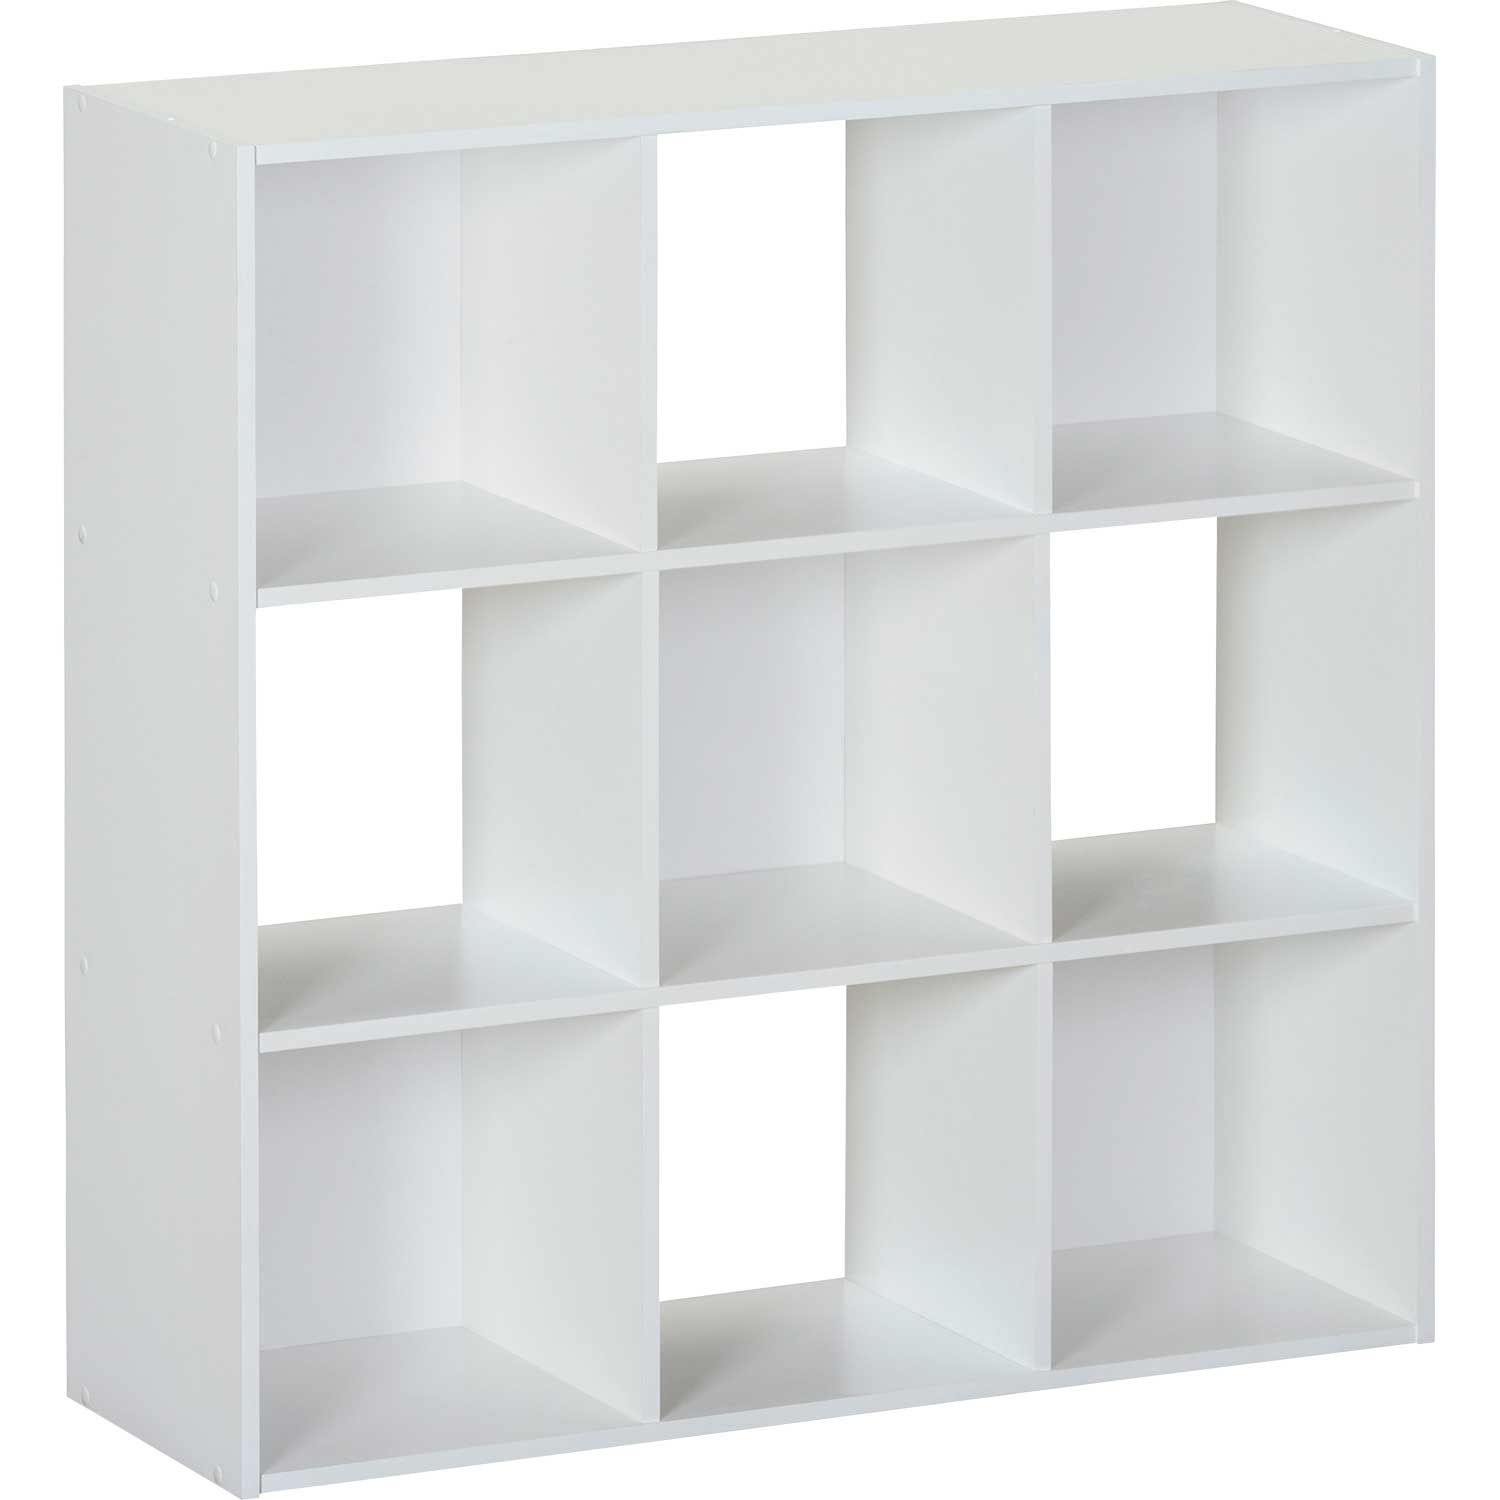 Beau SystemBuild White Nine Cube Storage Bookshelf ...